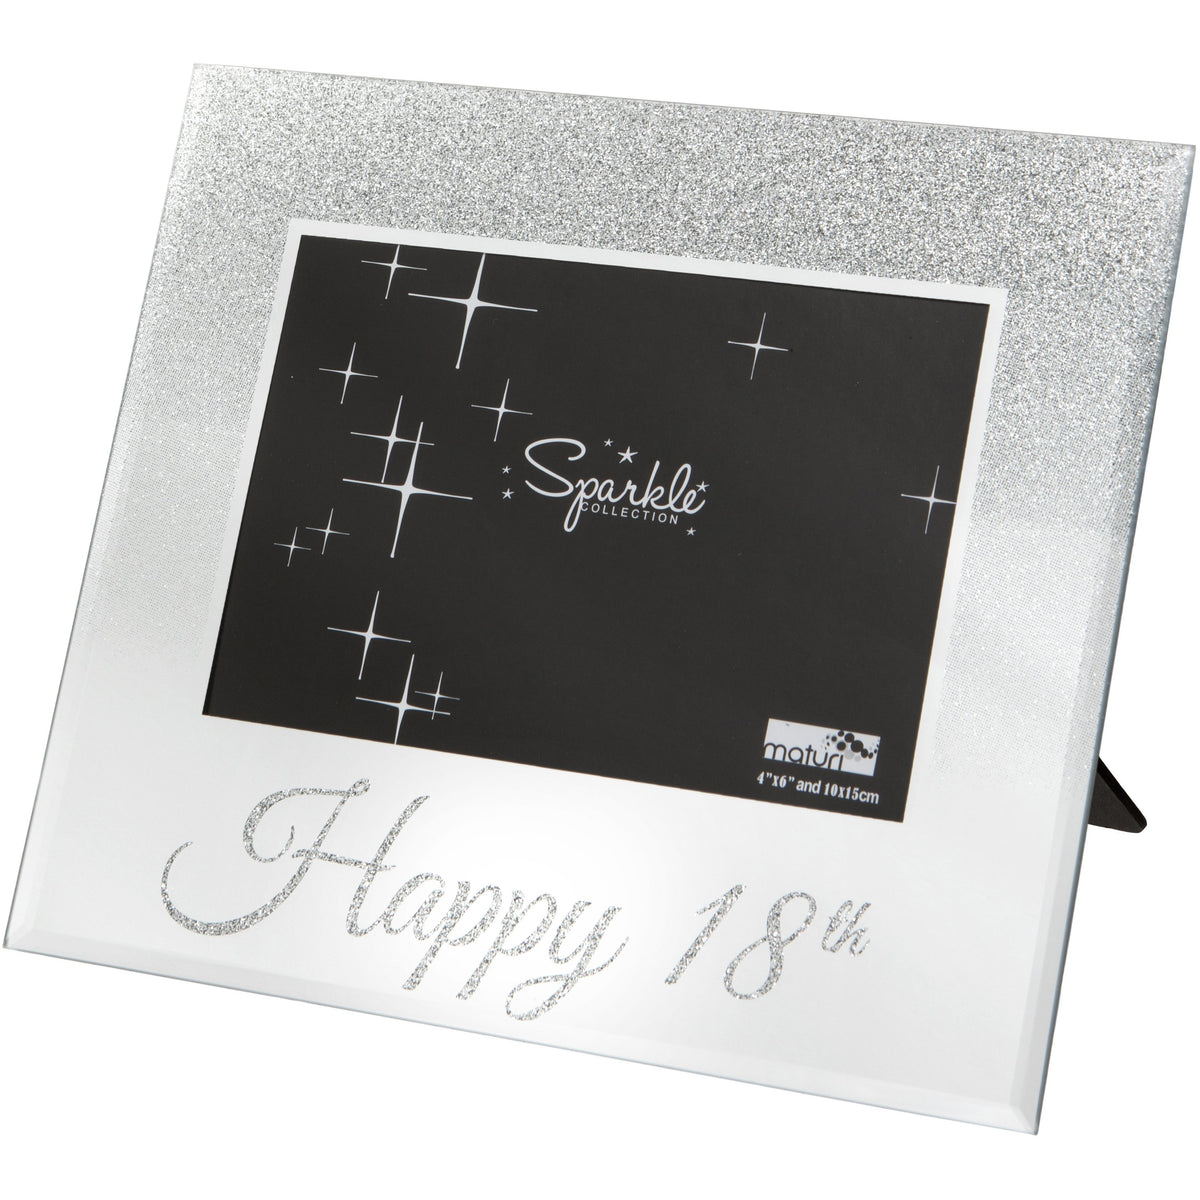 Mirrored Silver Glitter 6 x 4 Inch Photo Frame Happy 18th